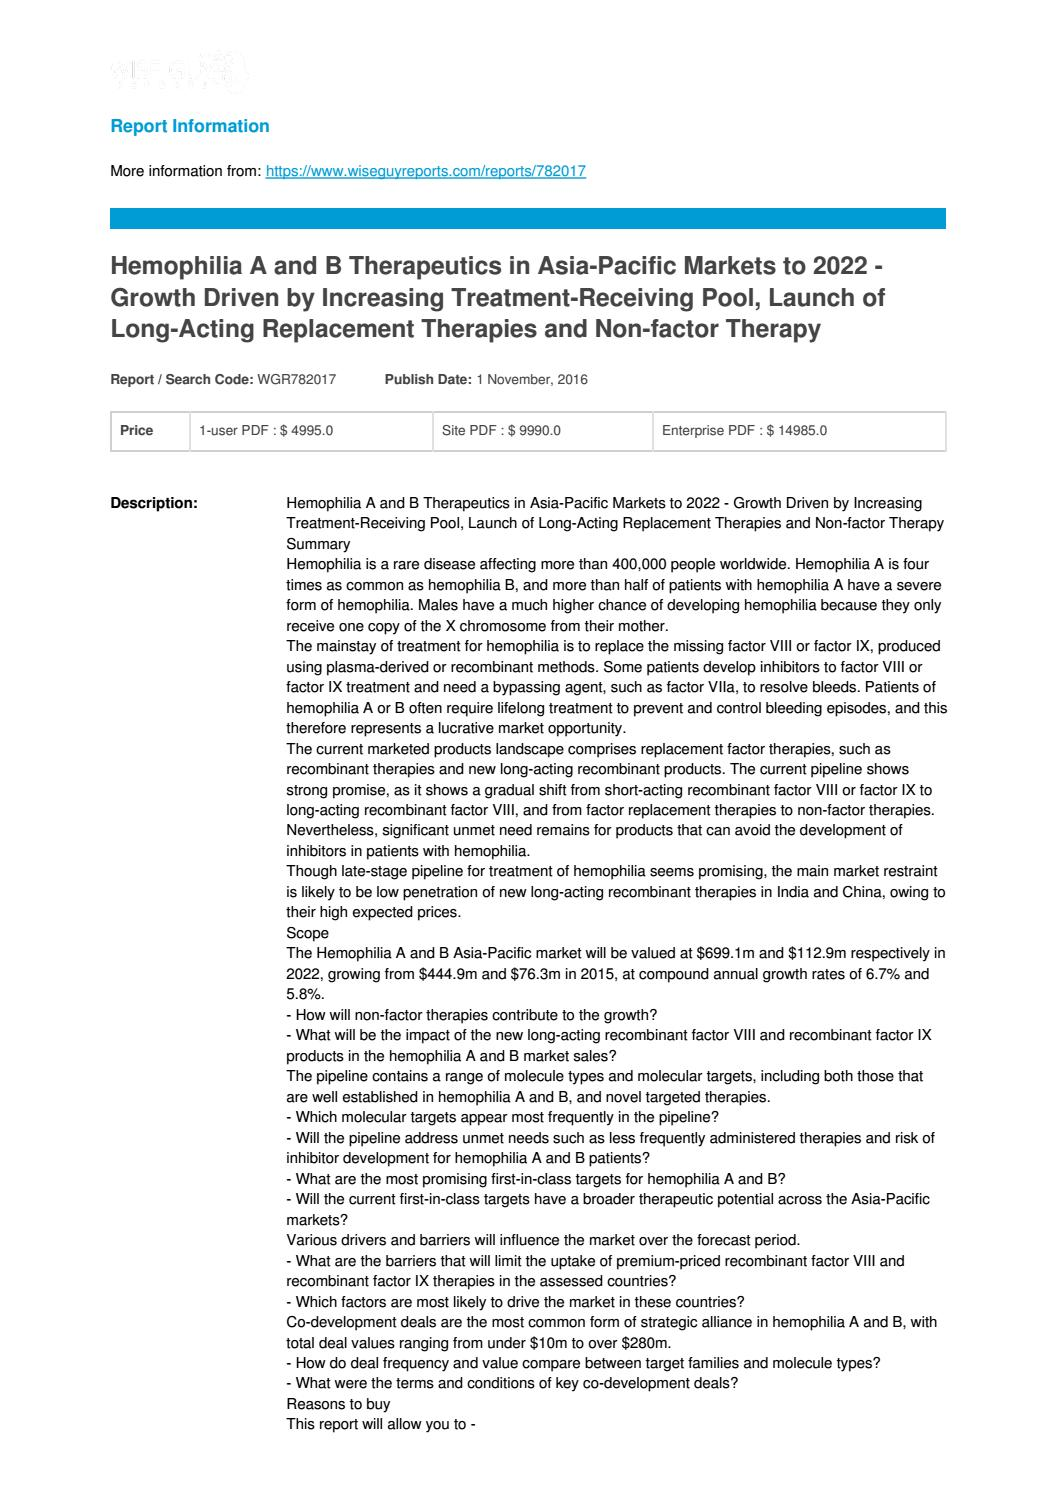 Hemophilia a and b therapeutics in asia pacific markets to